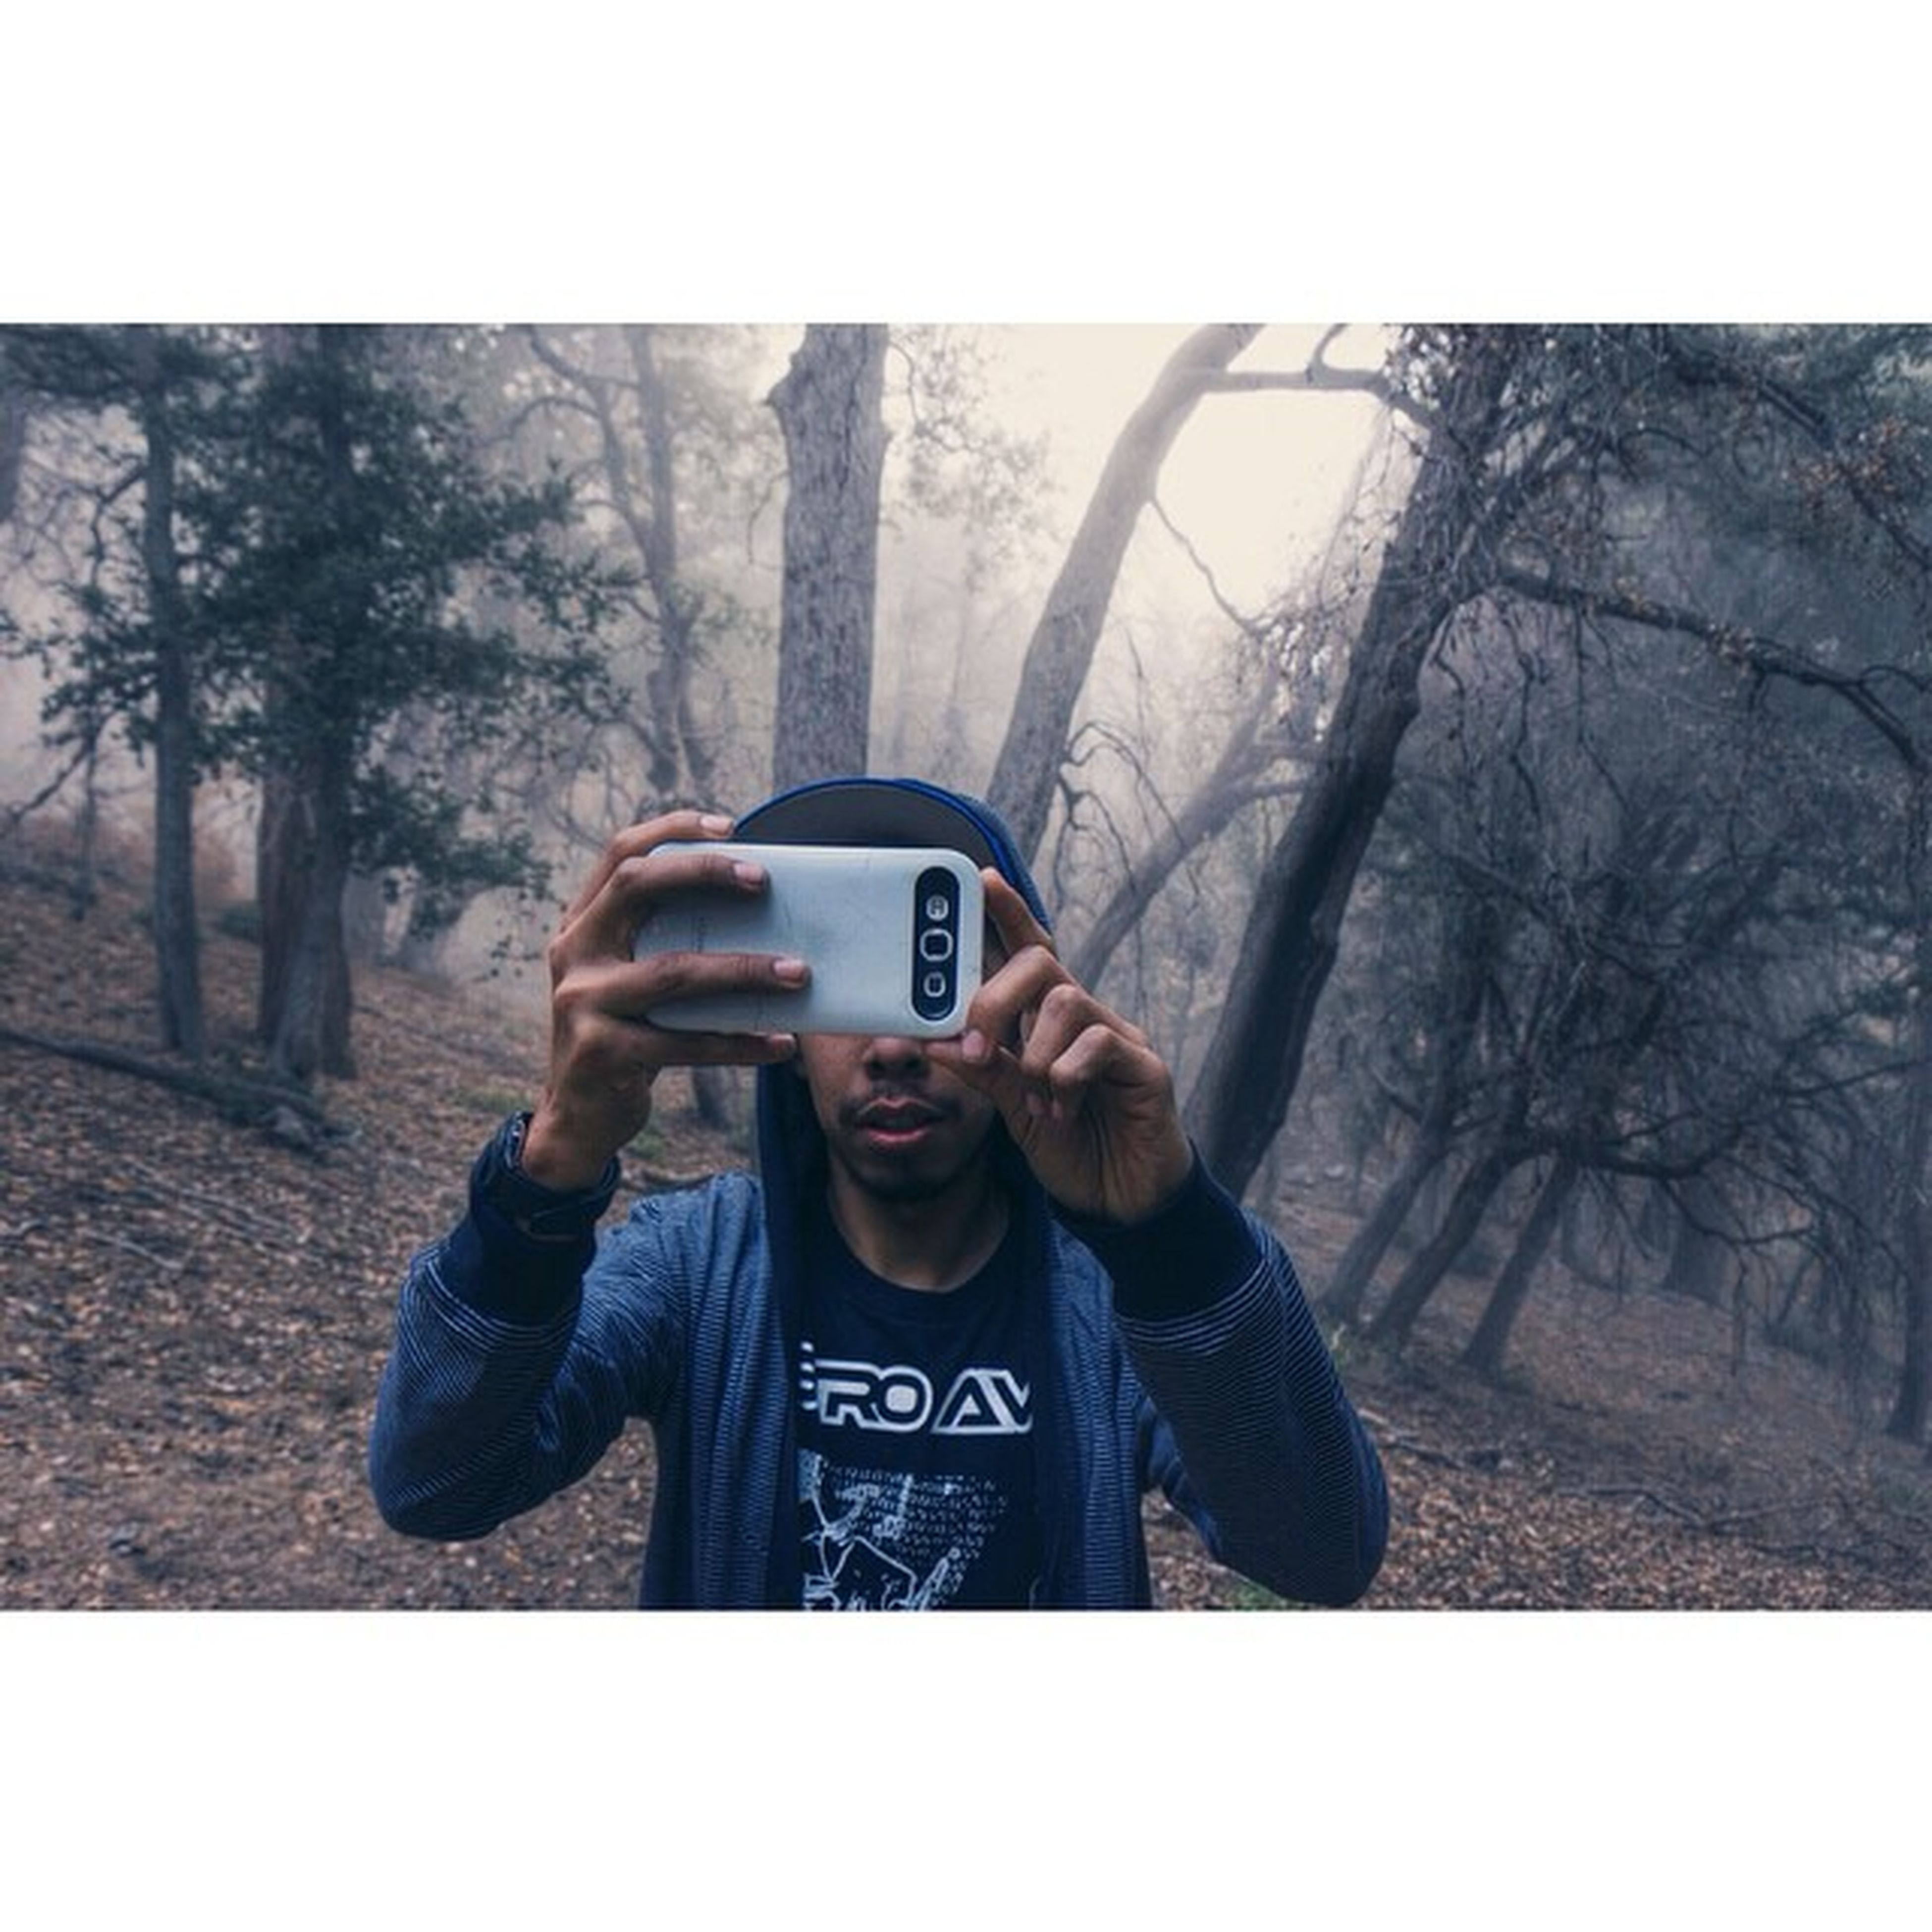 lifestyles, leisure activity, communication, photographing, tree, photography themes, holding, transfer print, wireless technology, casual clothing, technology, young men, young adult, camera - photographic equipment, person, men, smart phone